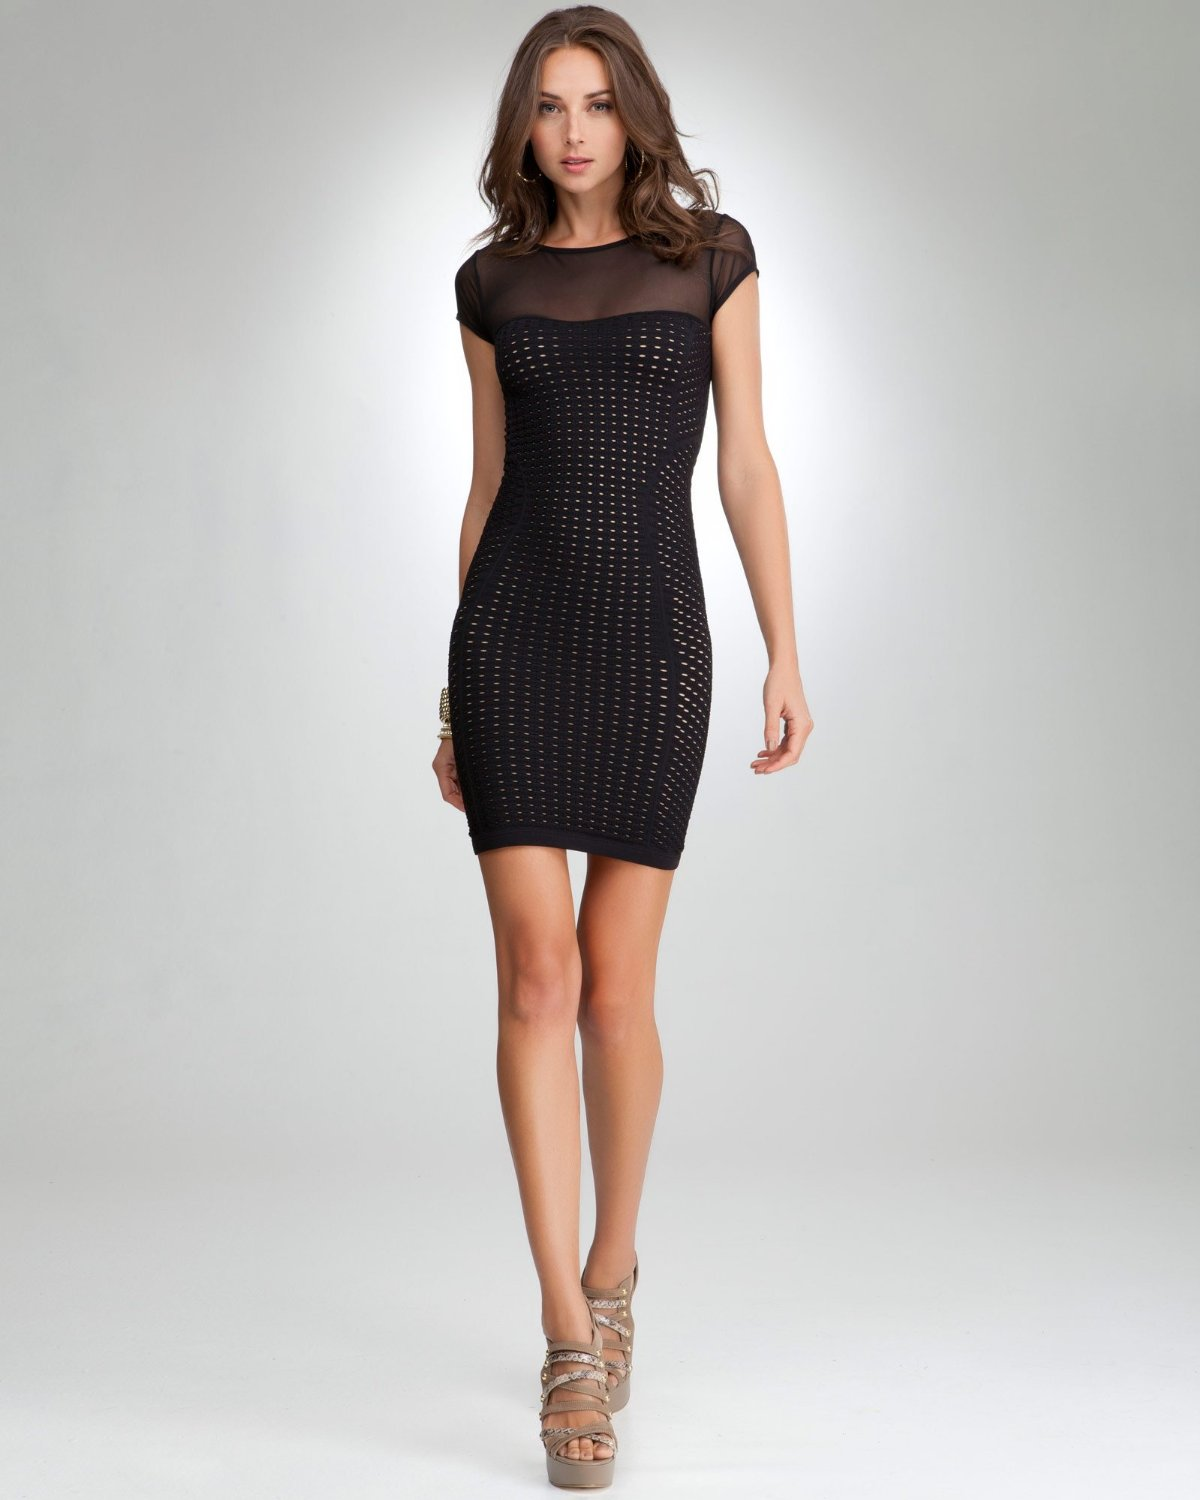 Women's Dresses. Search eBay dresses for a variety of sizes, colors, and styles. Whether shopping for casual or formal dresses at great prices, choose eBay to find great deals on your next formal or summer dress.